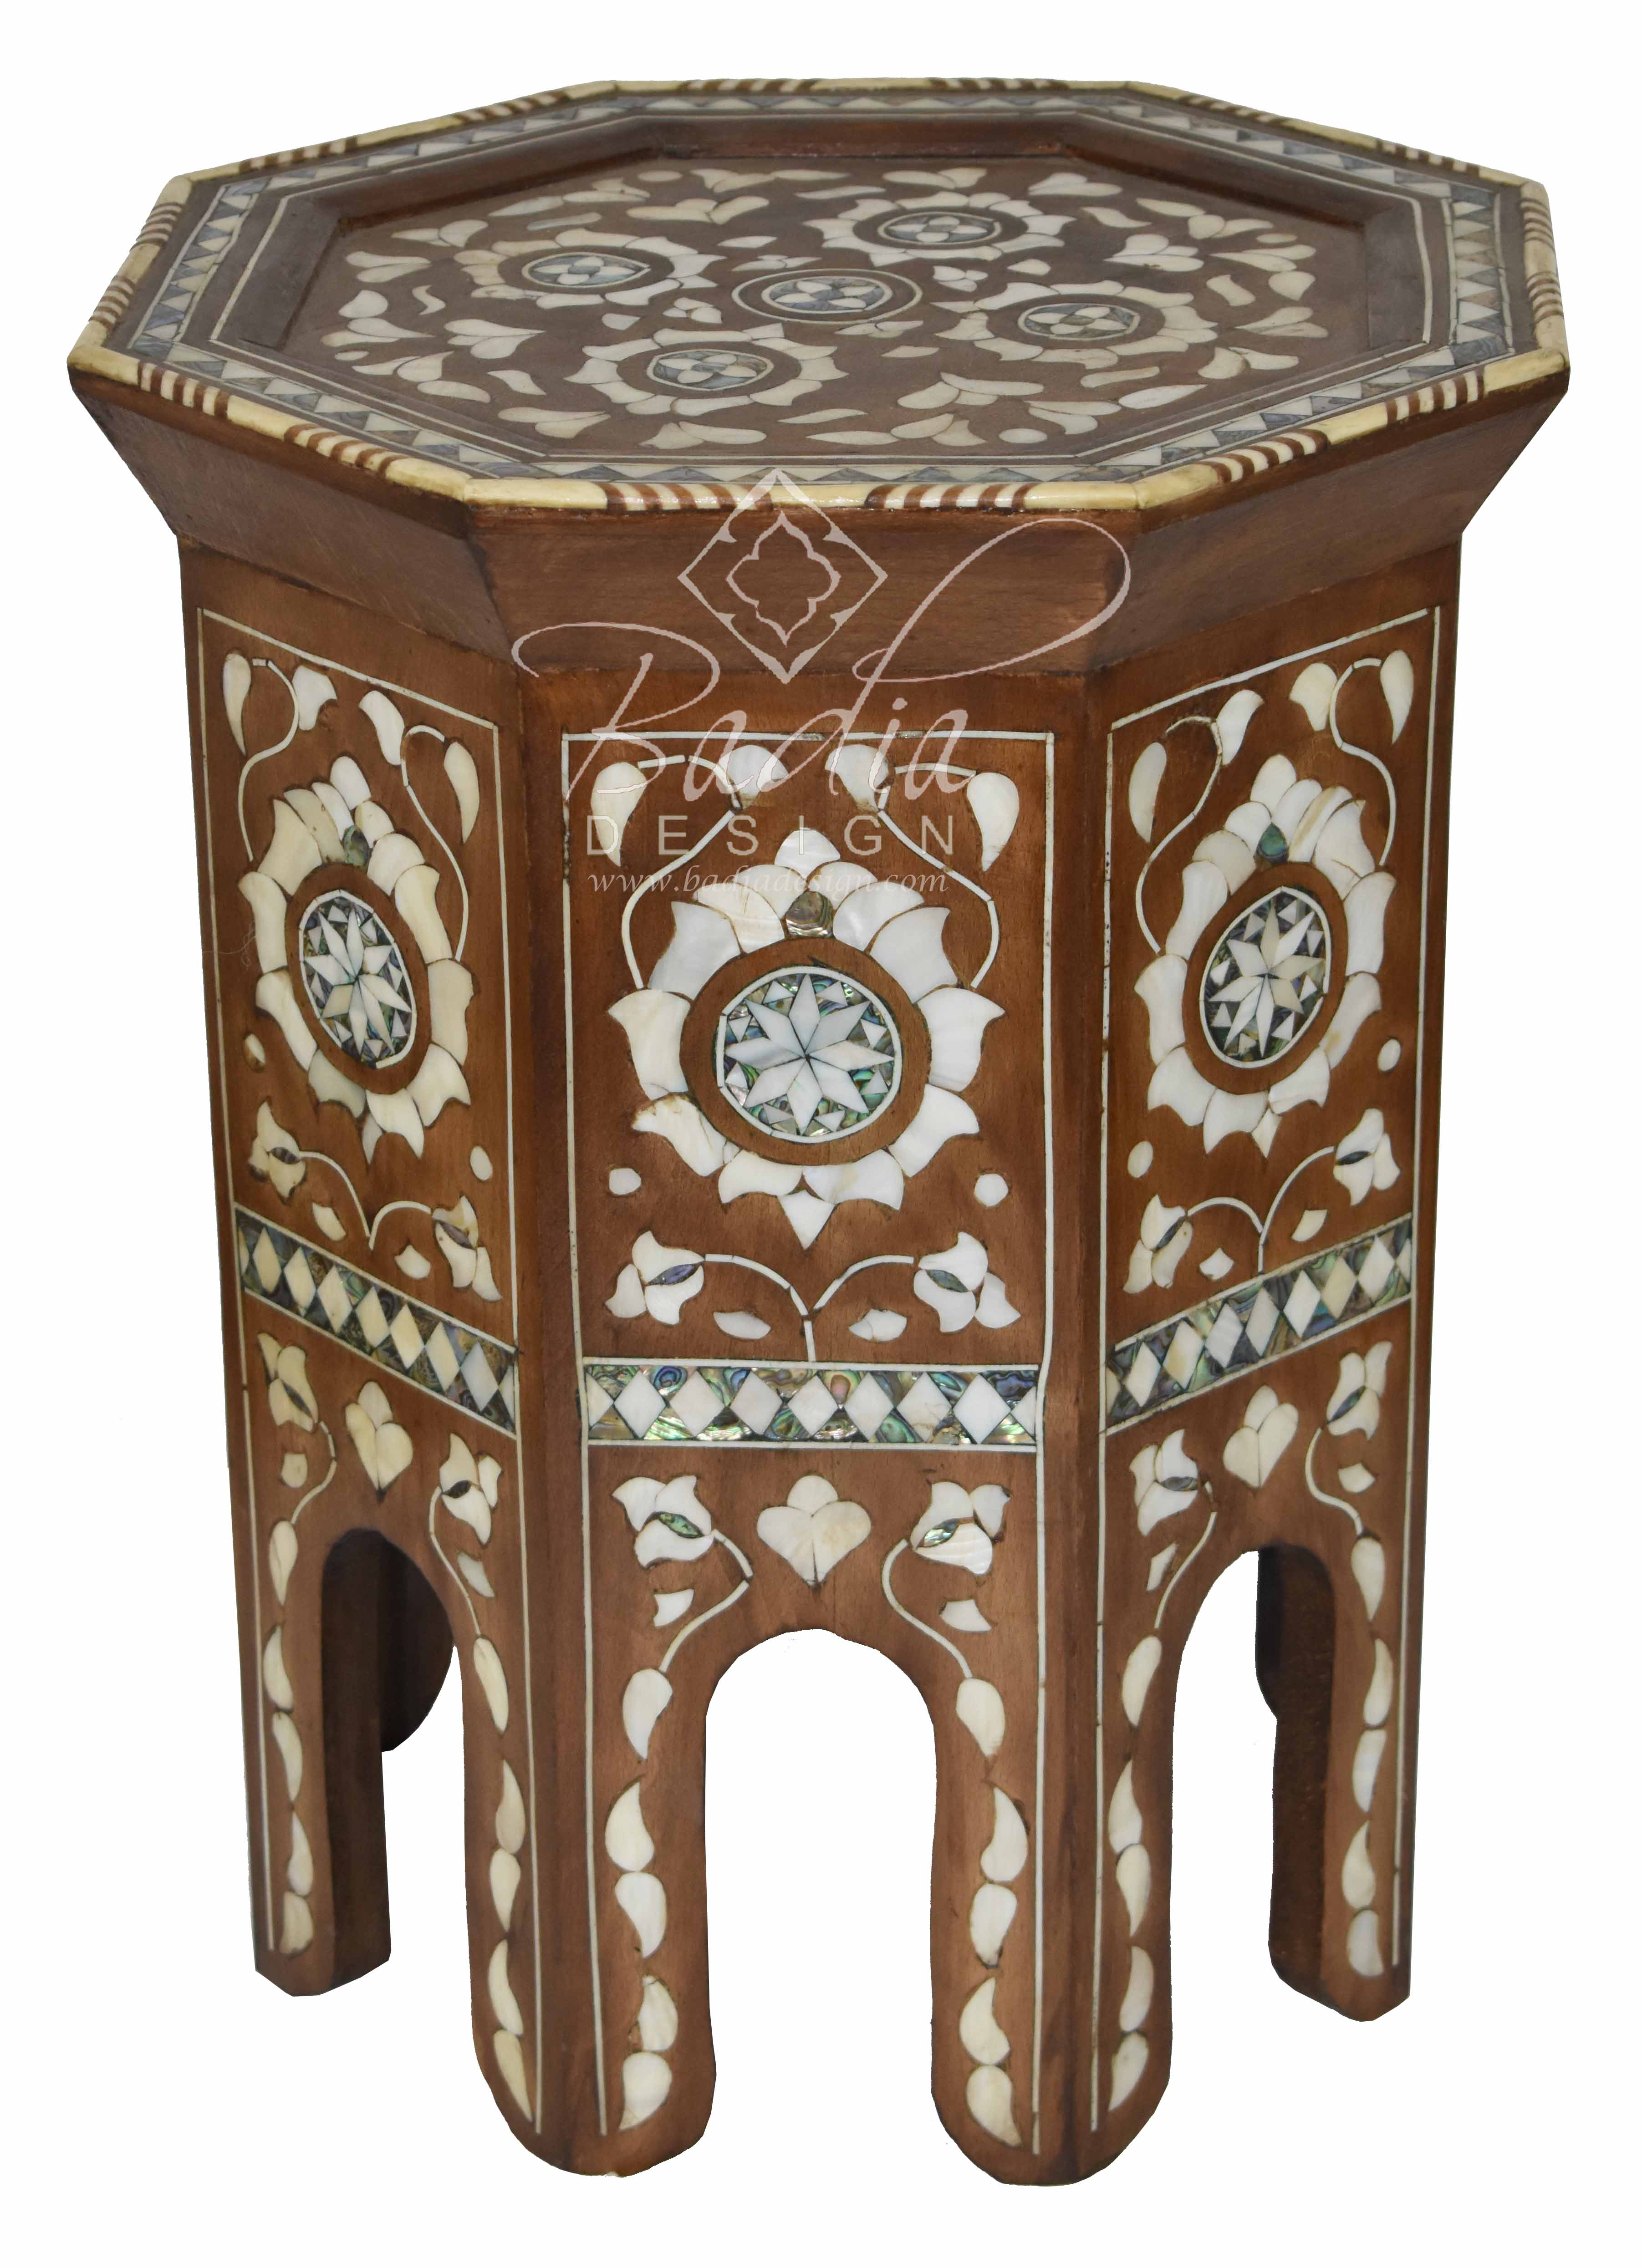 moroccan-white-bone-inlay-side-table-mop-st103-1.jpg